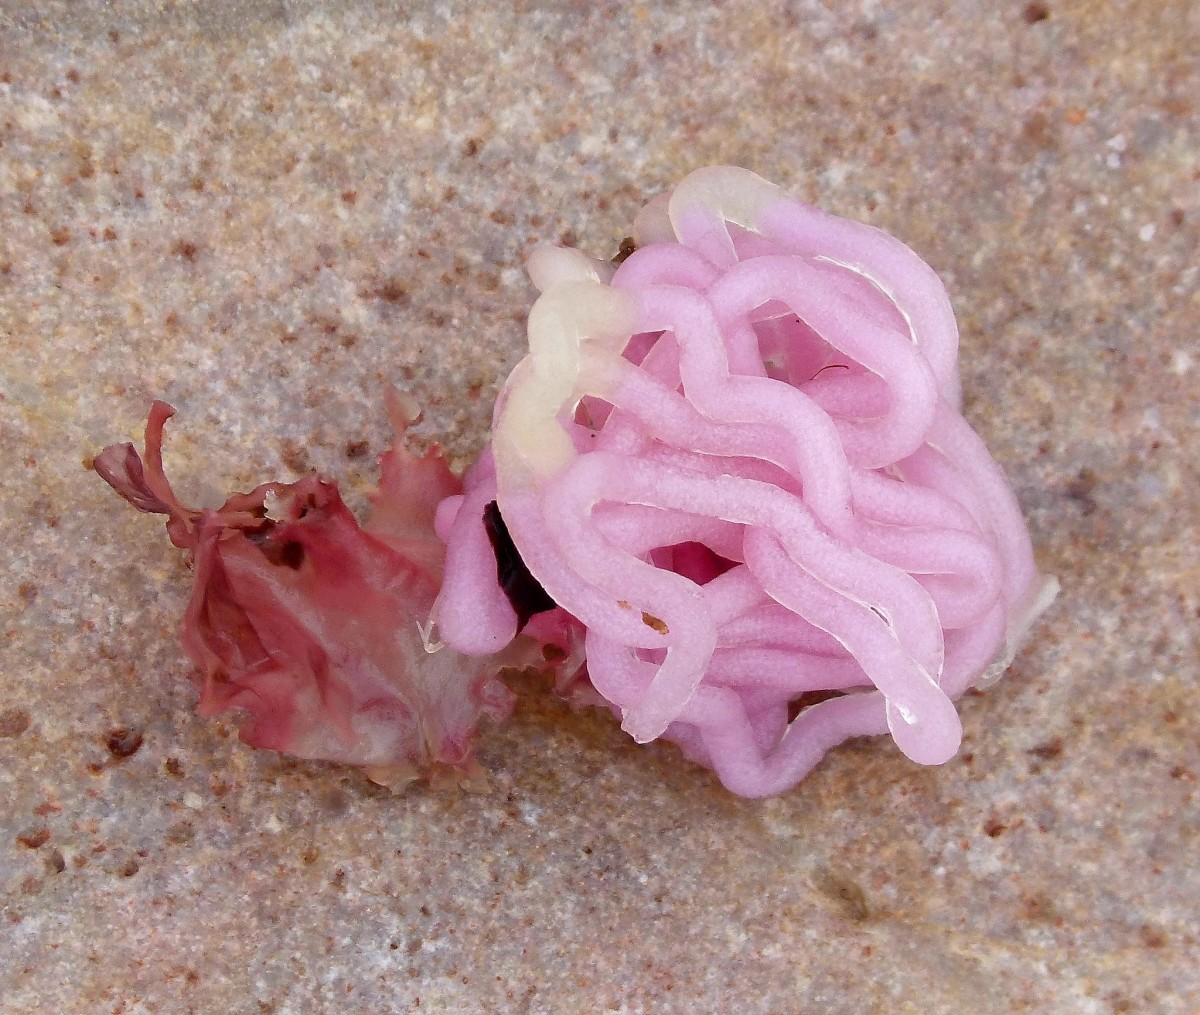 Eggs of a sea hare in Scotland